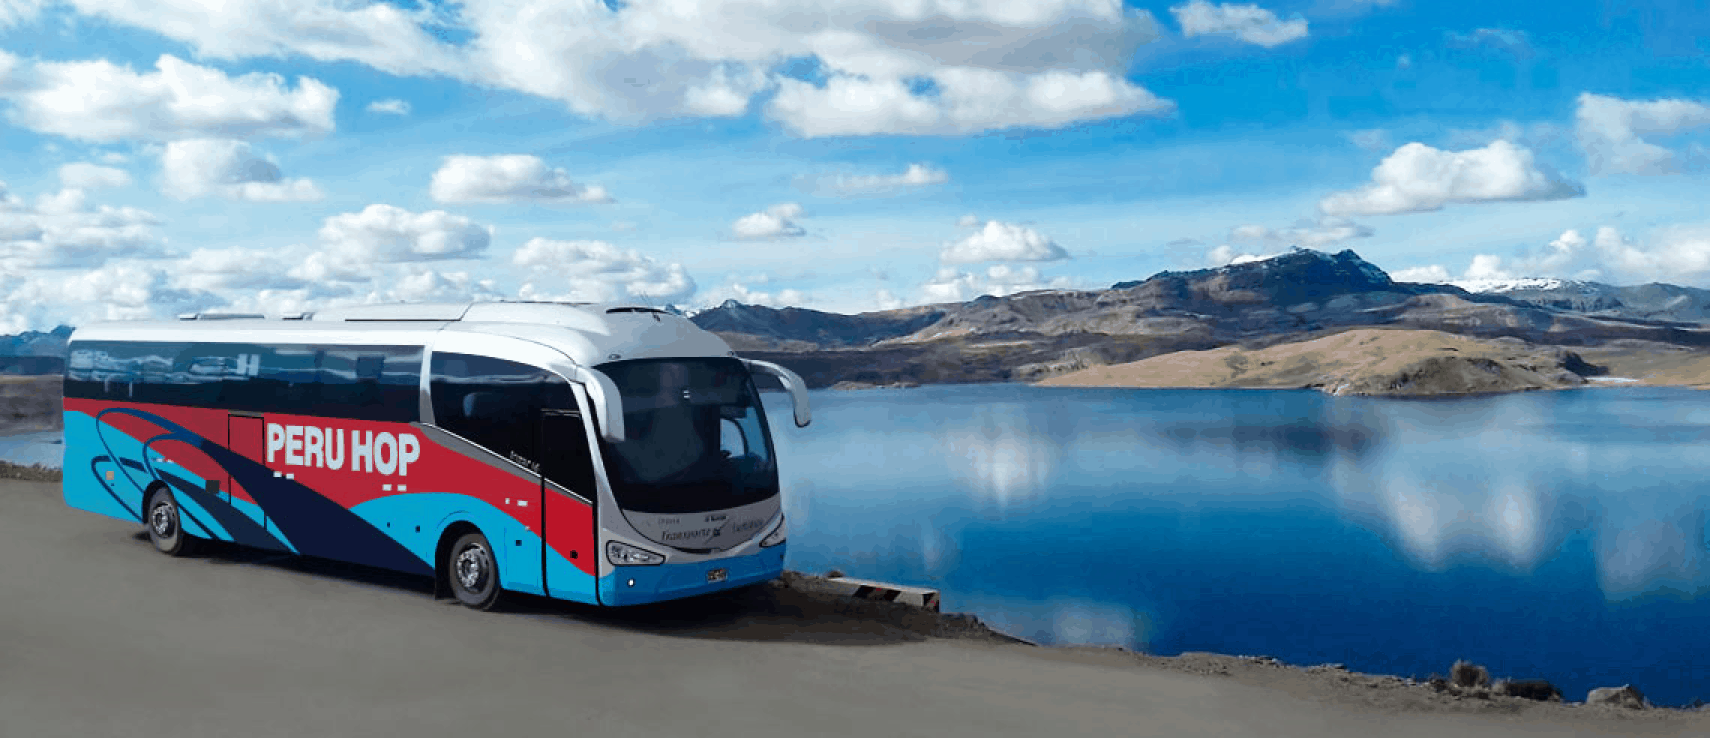 Peru Hop bus beside lake